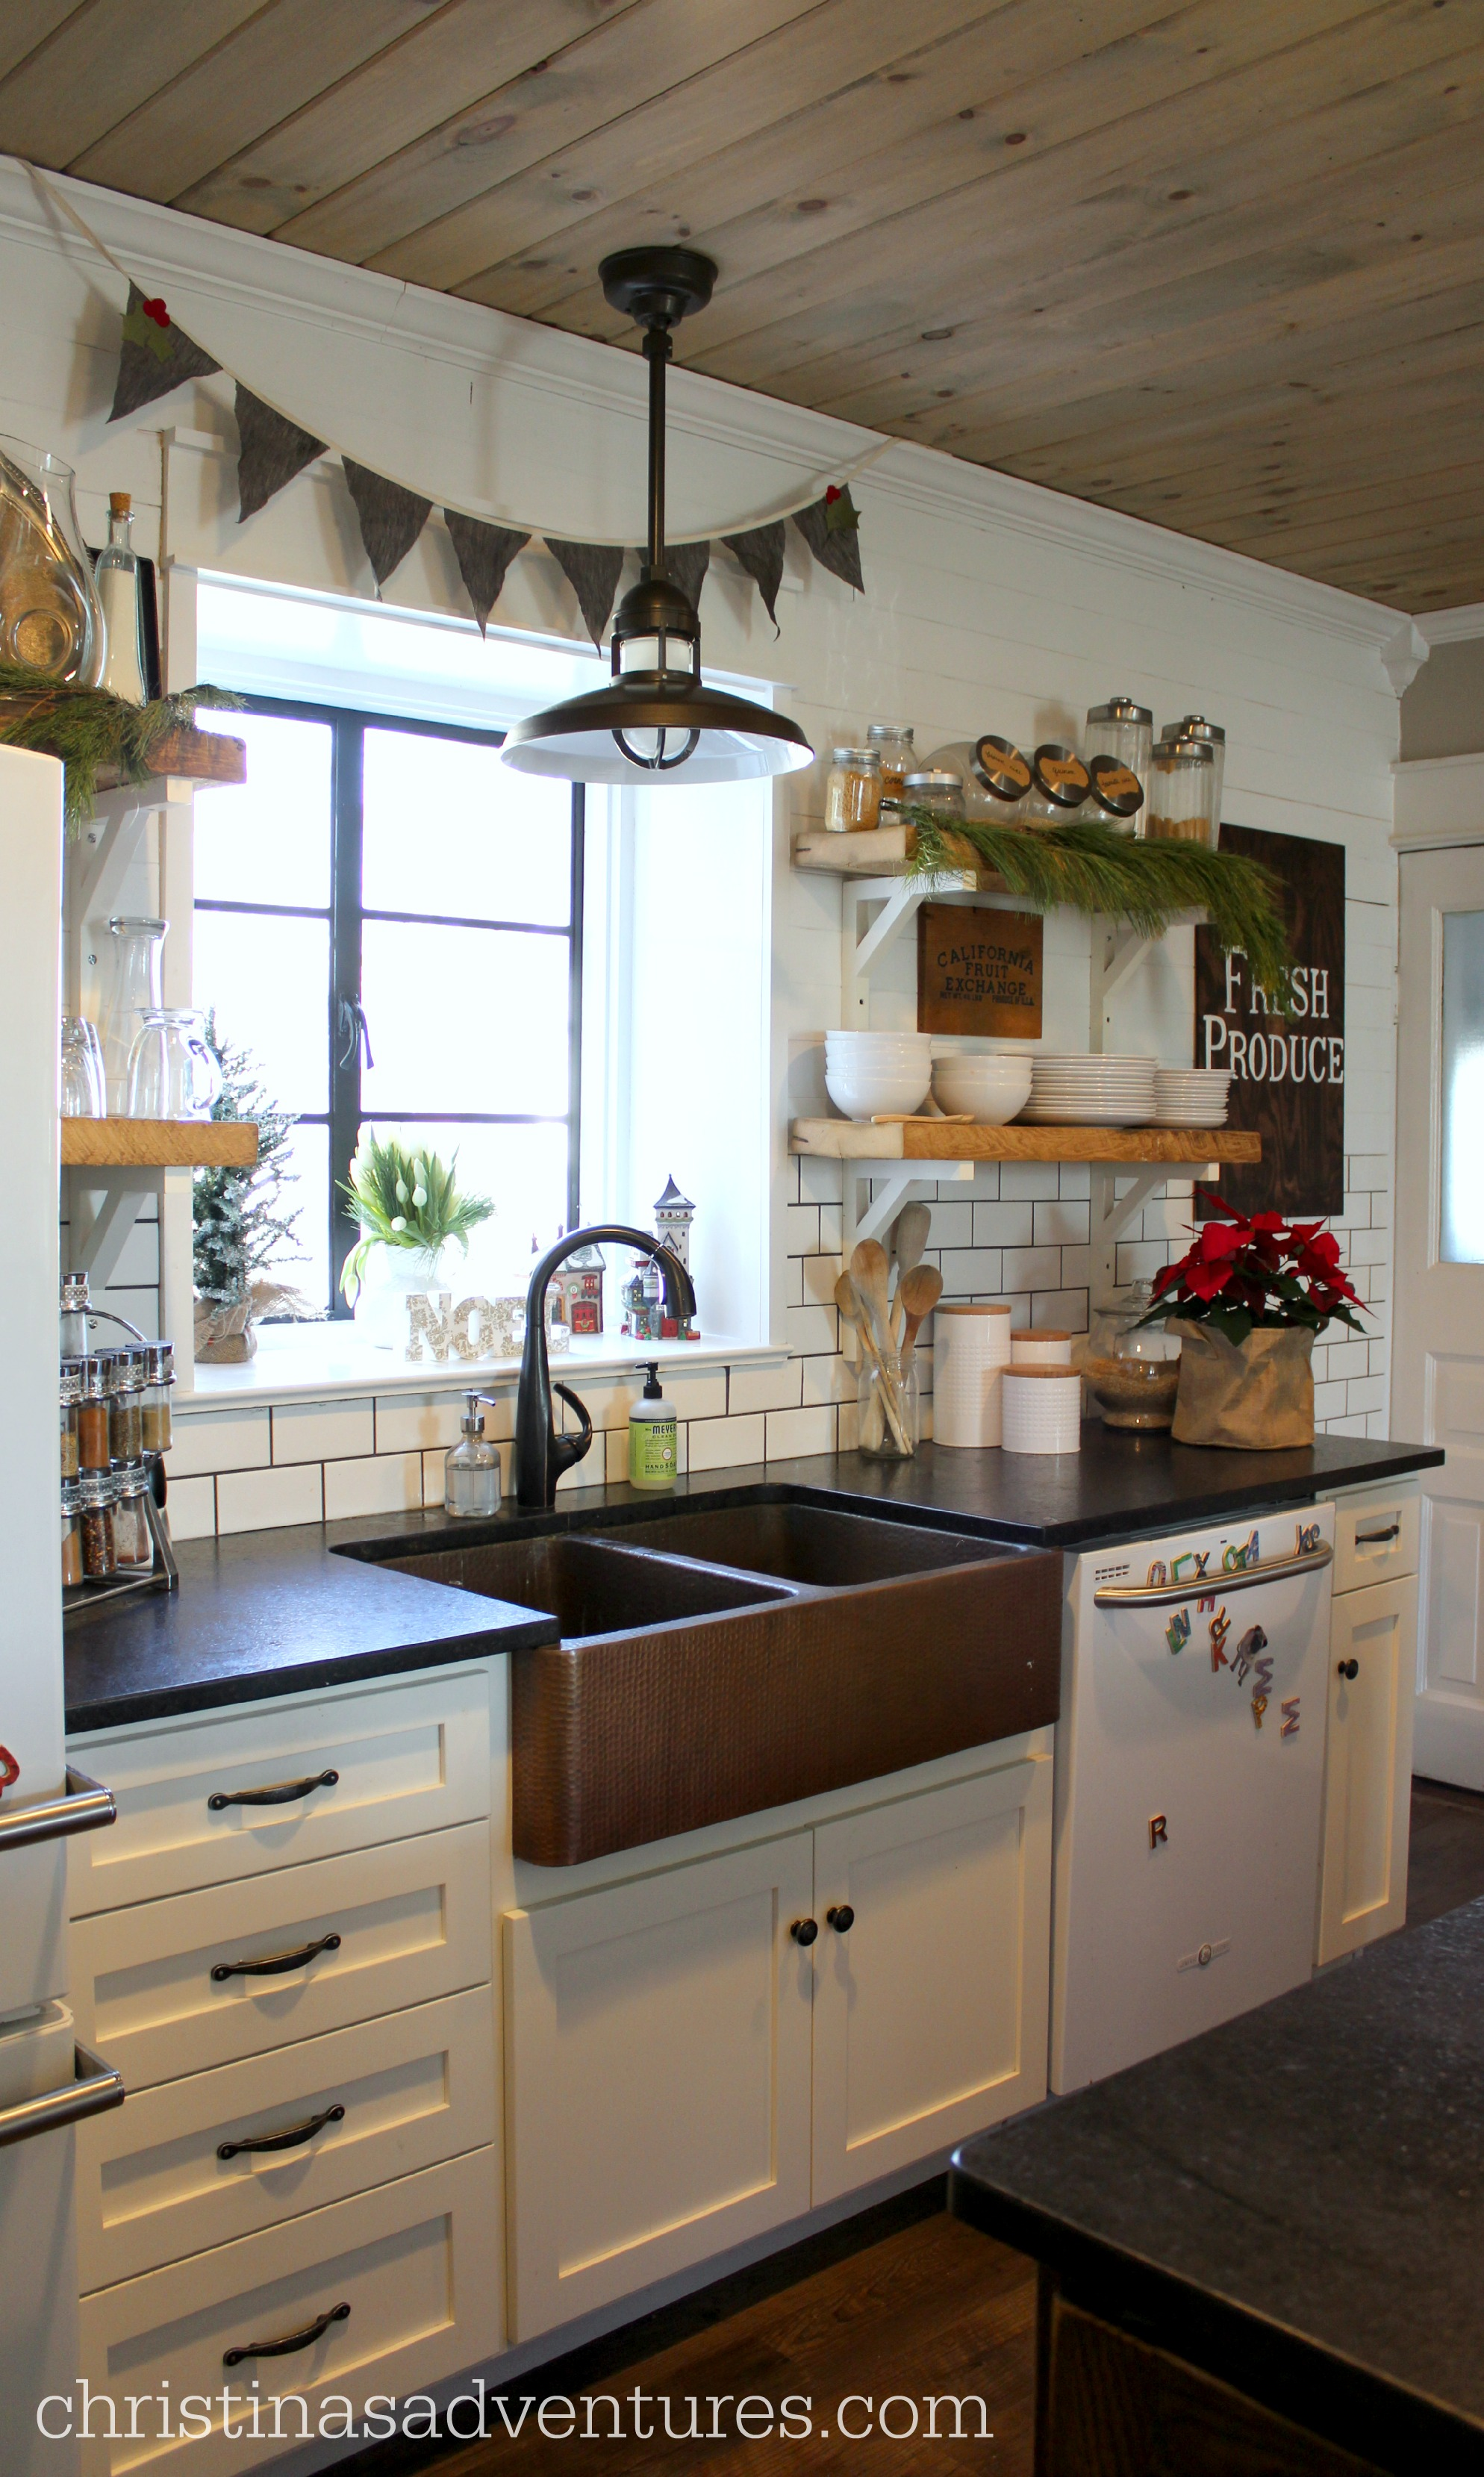 Adventures In Decorating Our 2015 Fall Kitchen: 1902 Victorian Christmas House Tour